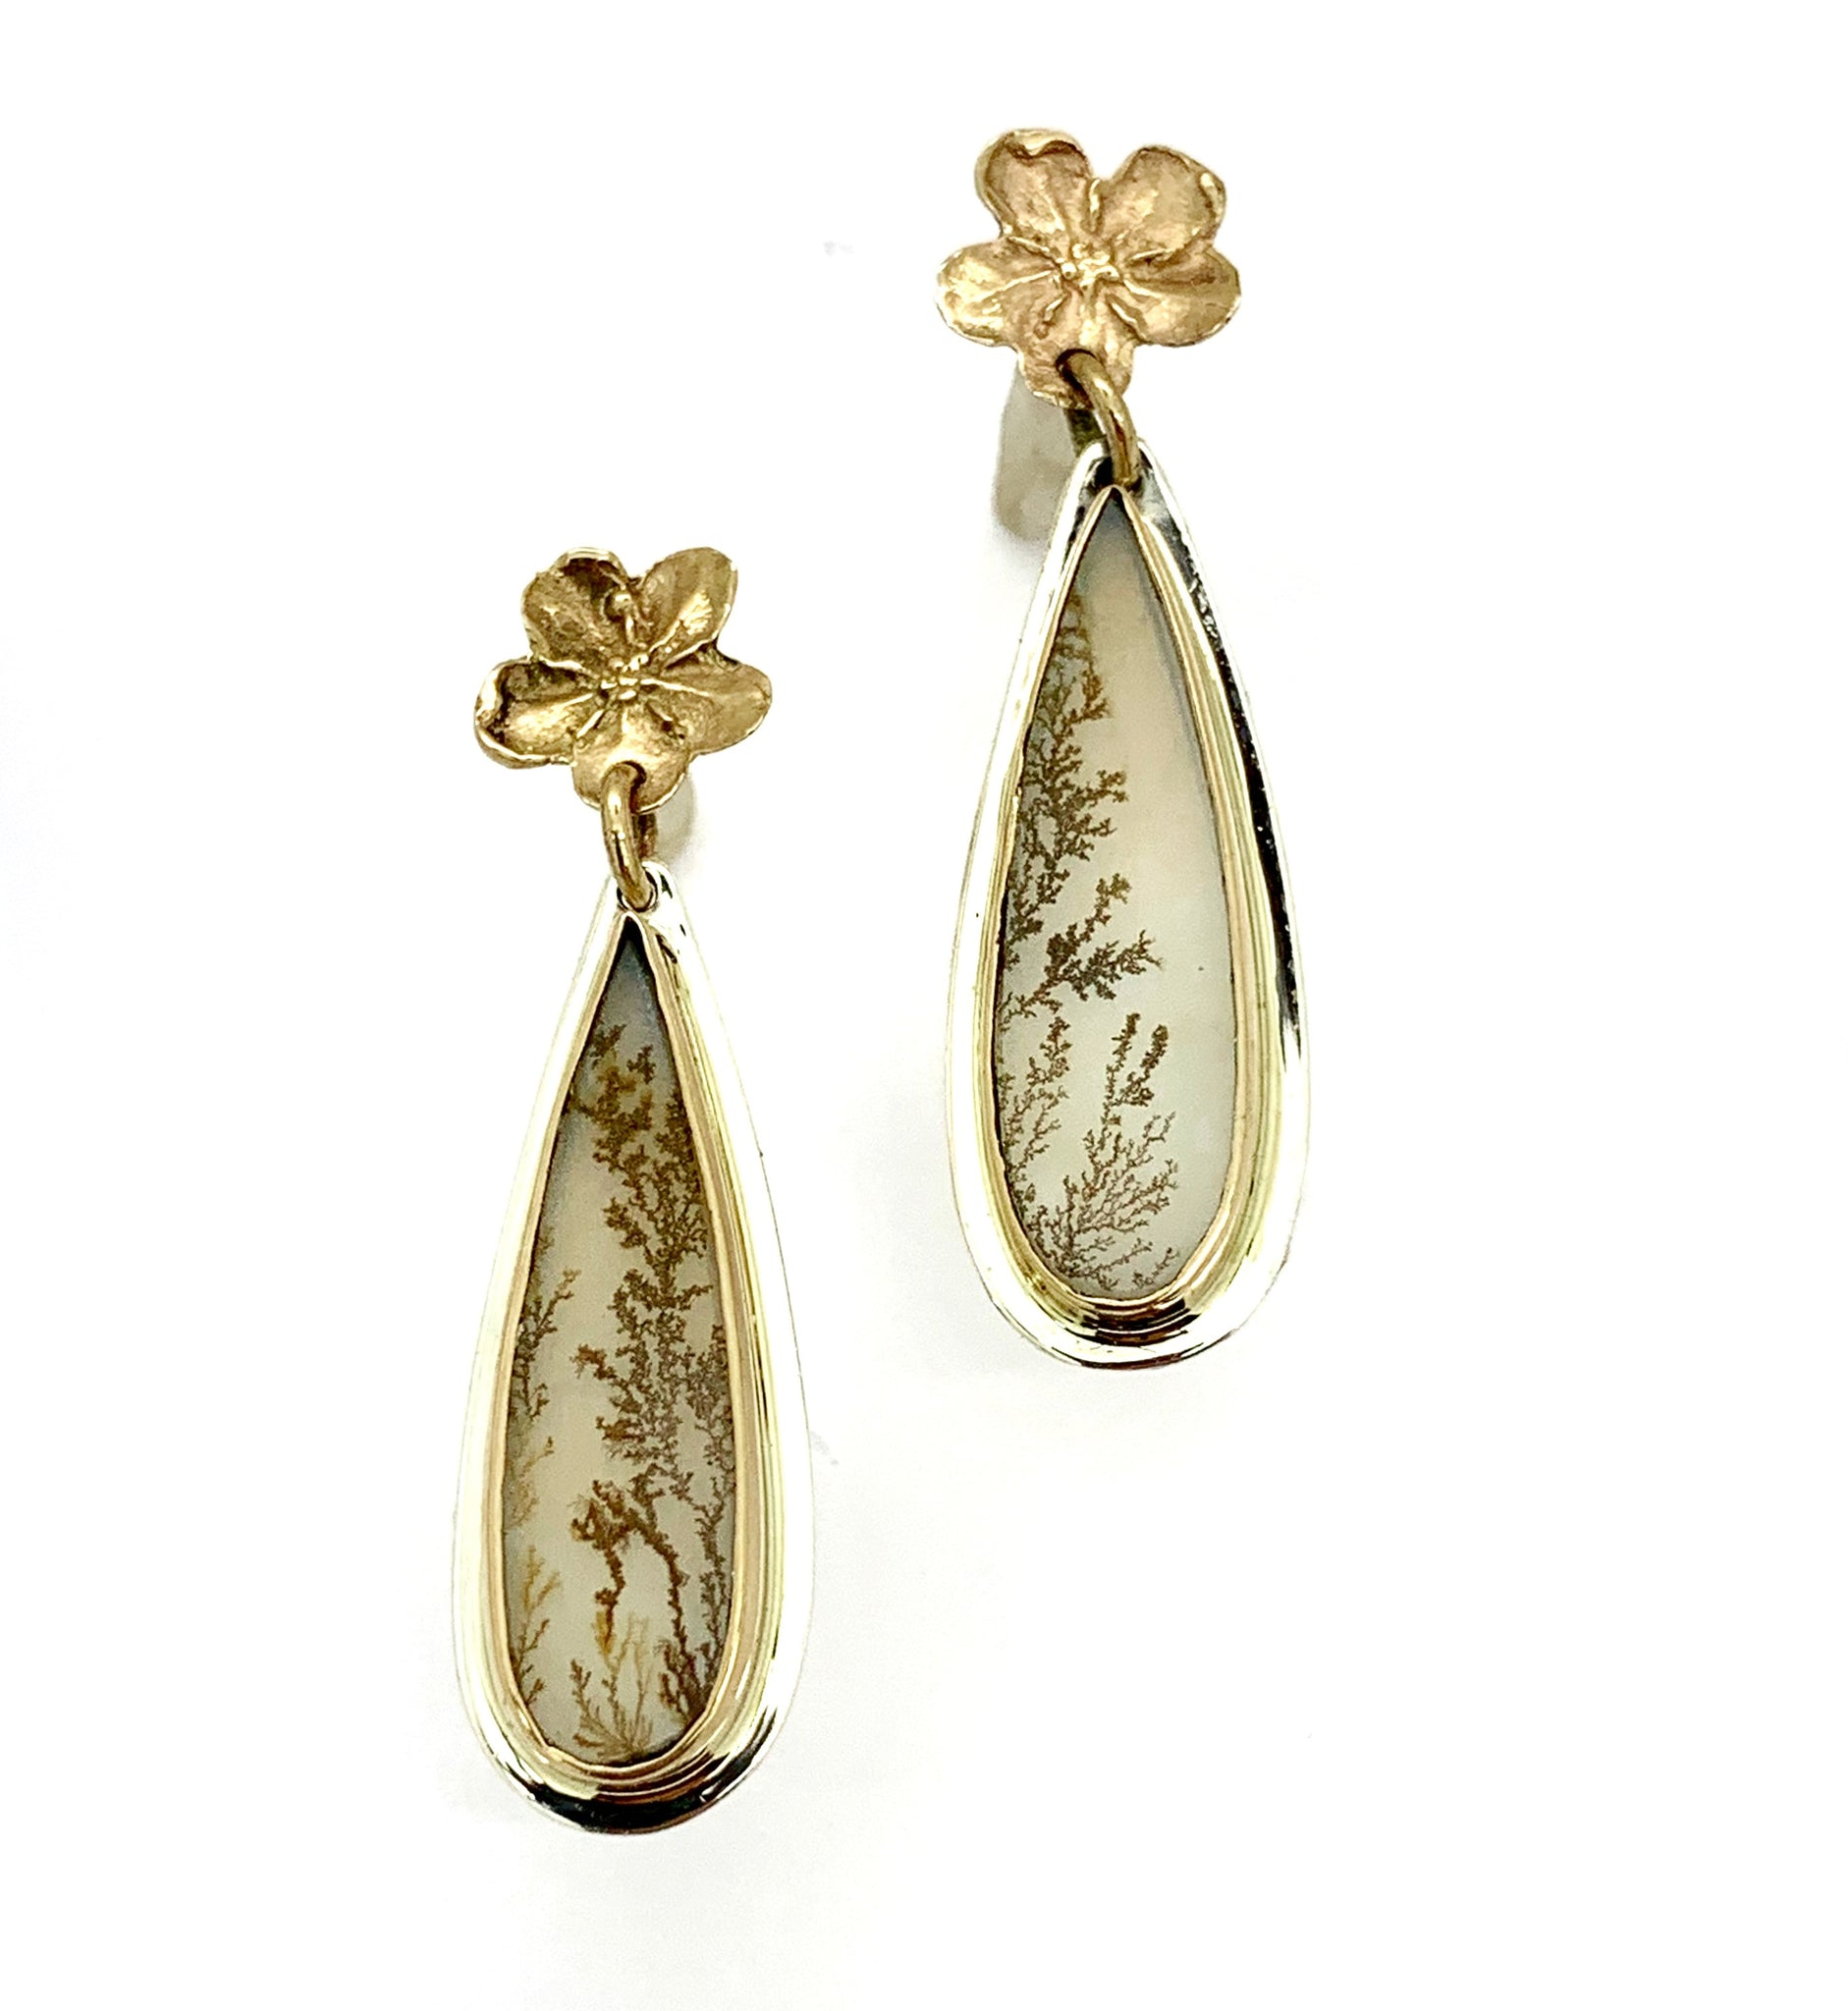 Dendritic Agate Earrings with 14k Gold Flowers